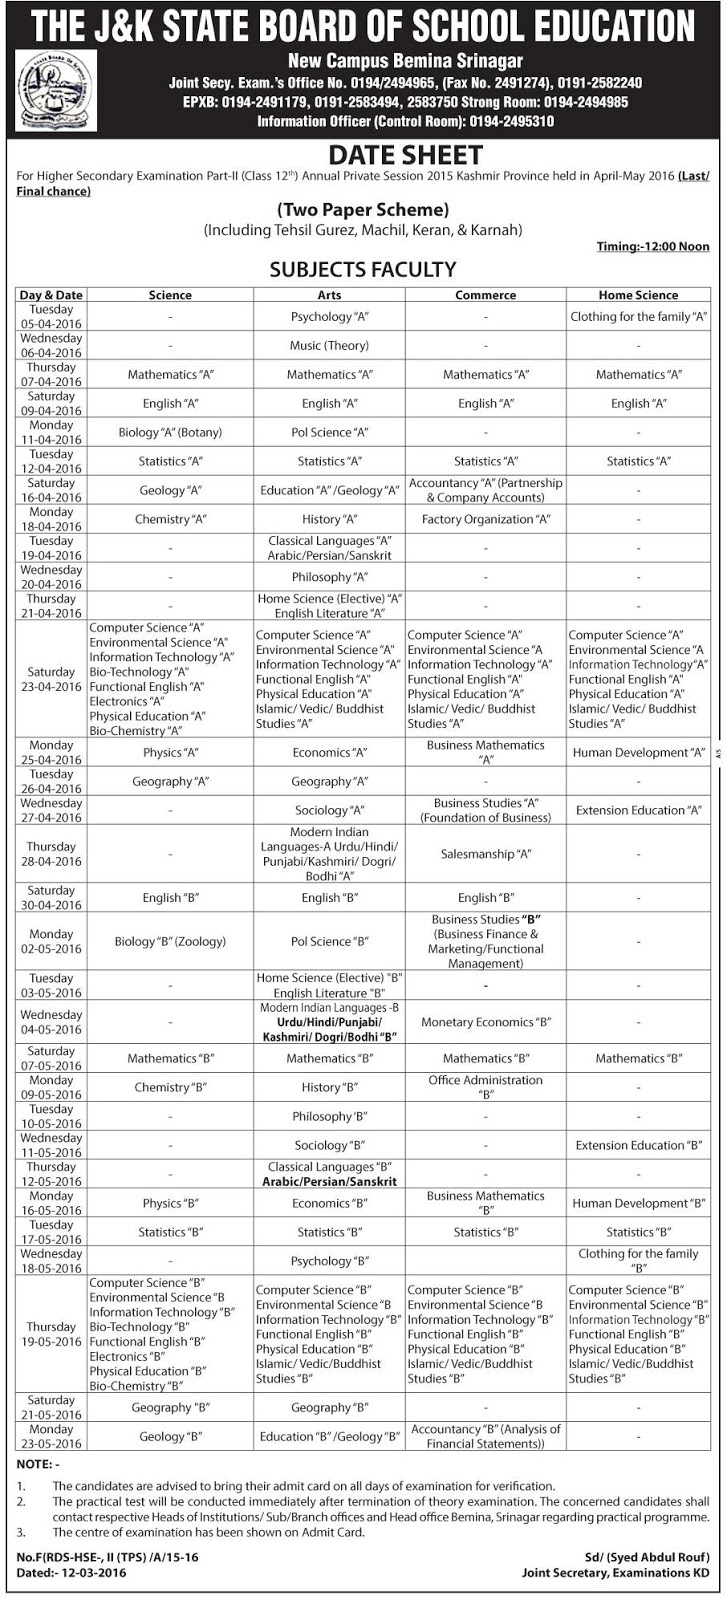 Date Sheet for 12th Class Annual Private Examination